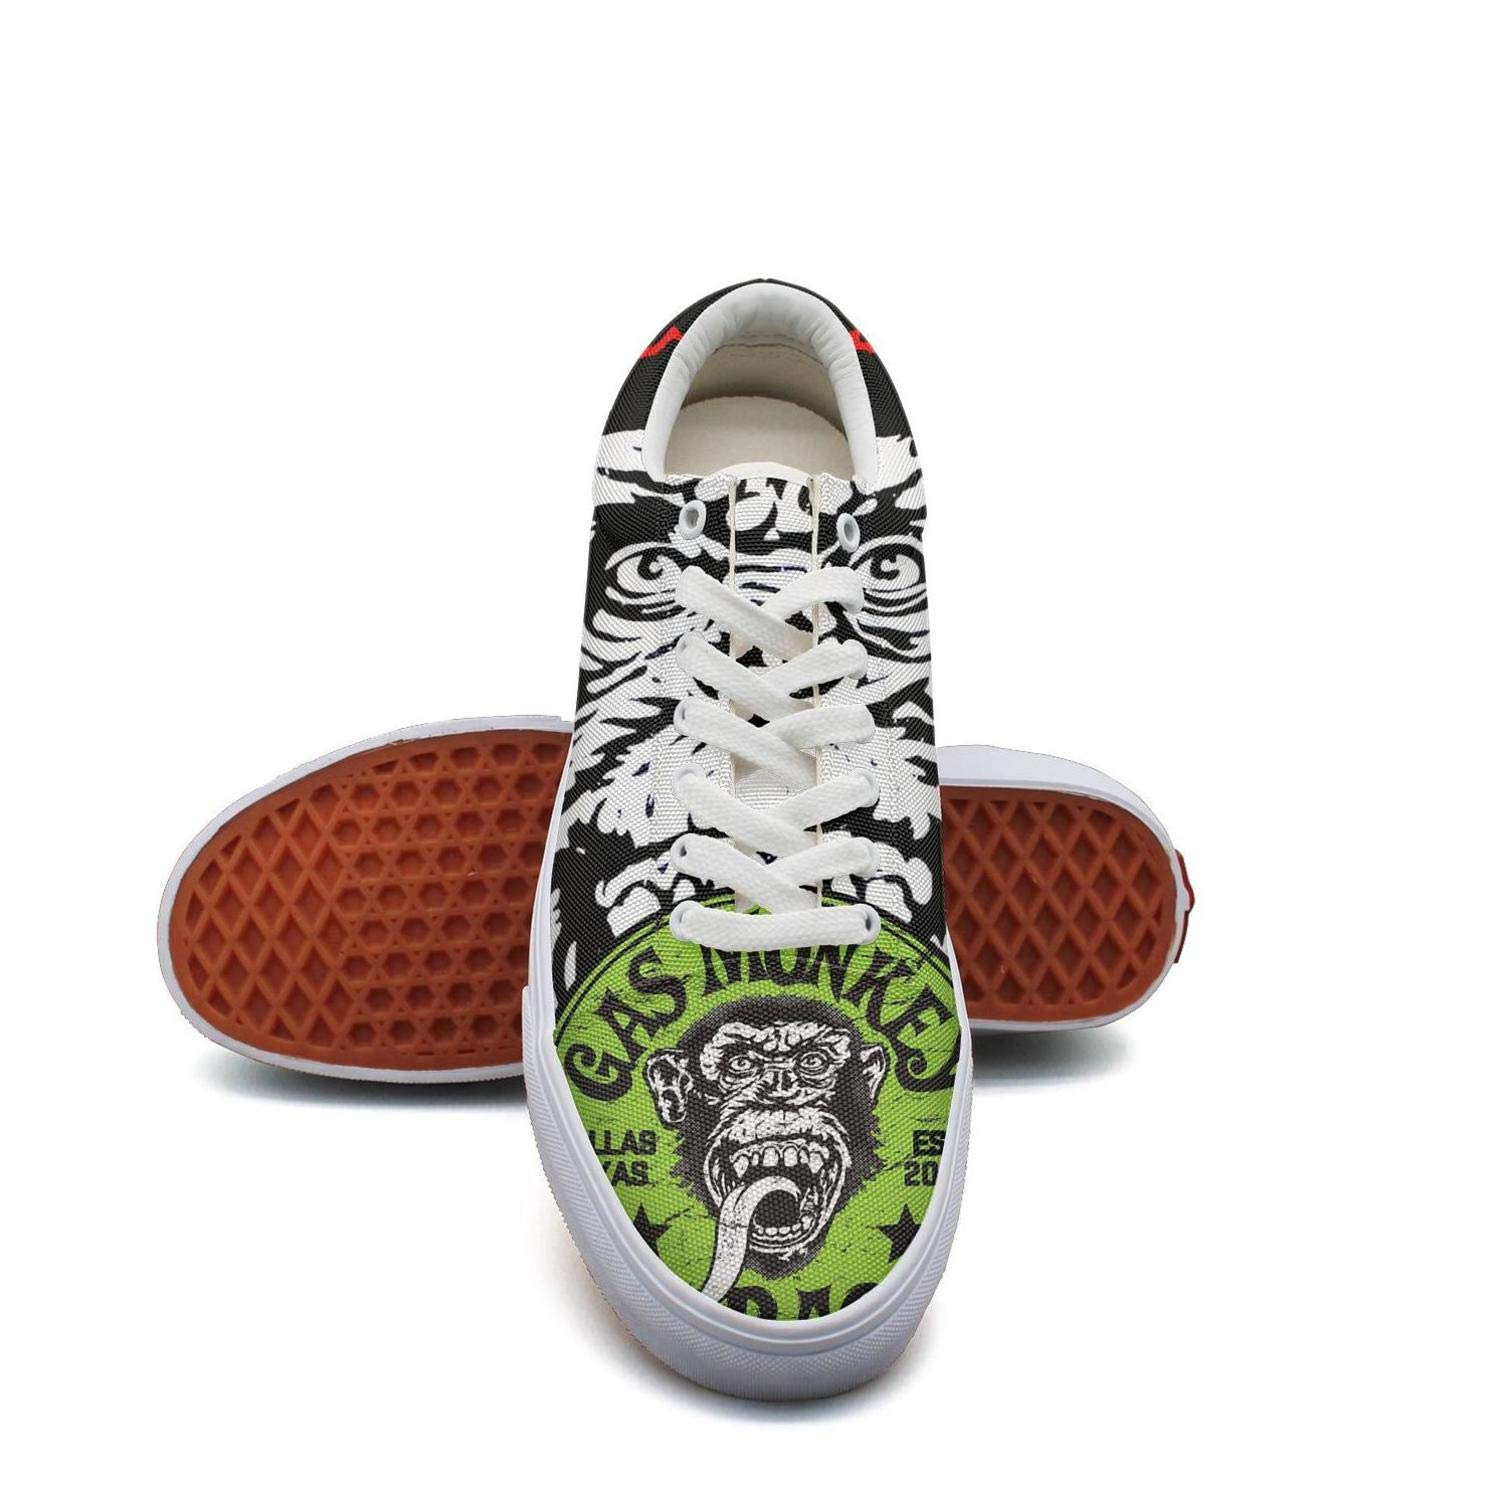 On Running Shoes NUMJ KALL Gym Shoes for Mens Quick-Drying Gas-Monkey-Garage-Logo